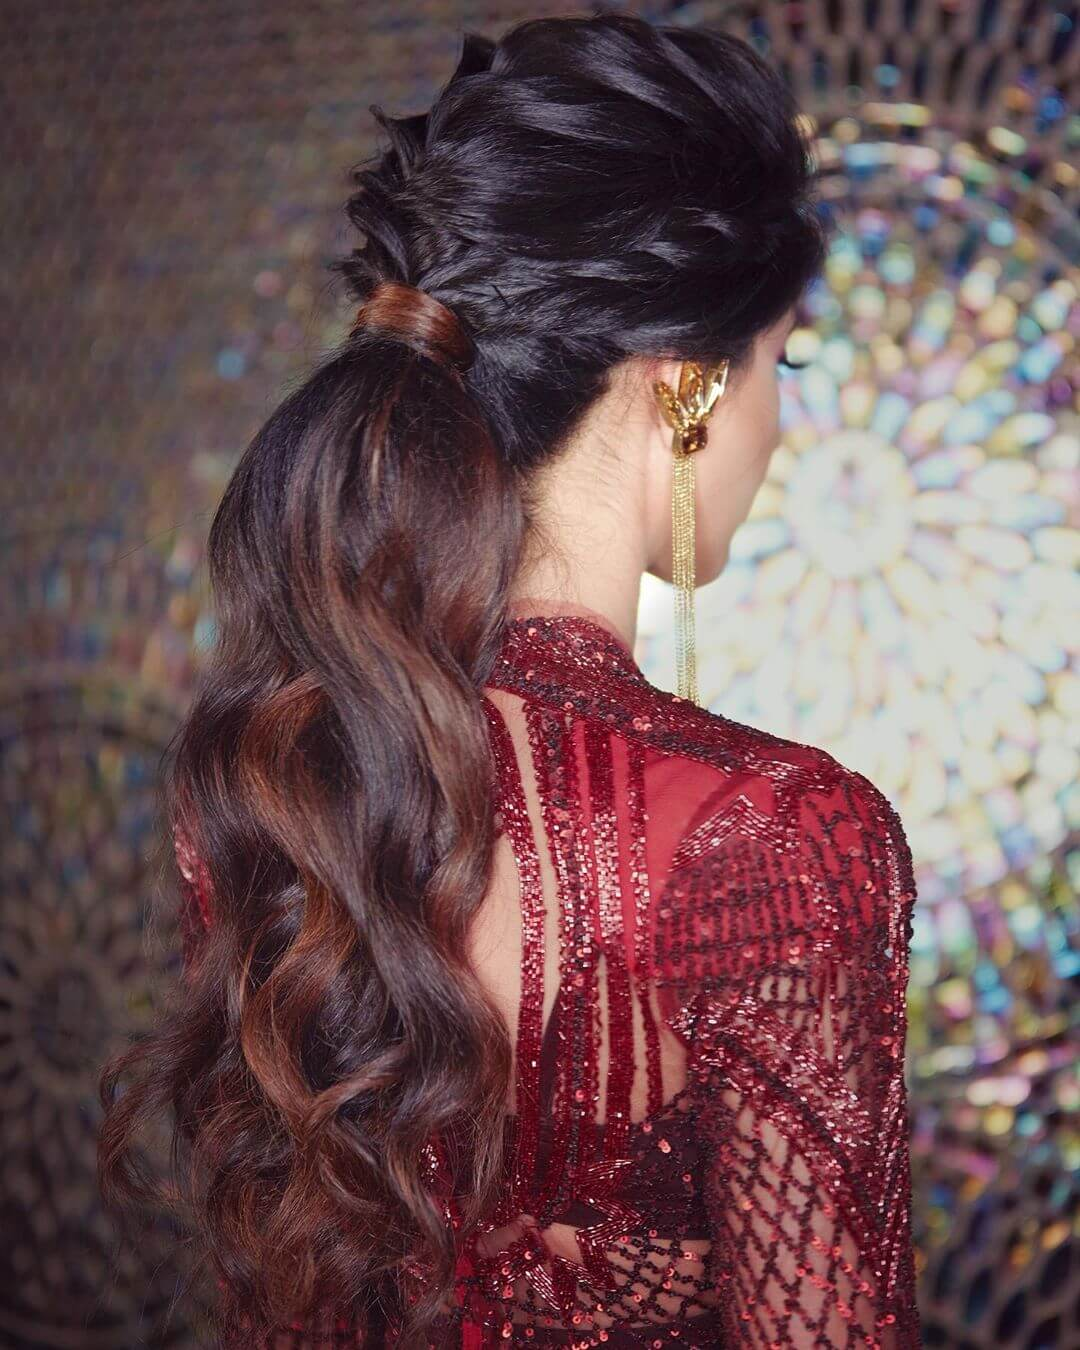 Textured Braided Ponytail Hairstyles with Gown for Indian Wedding